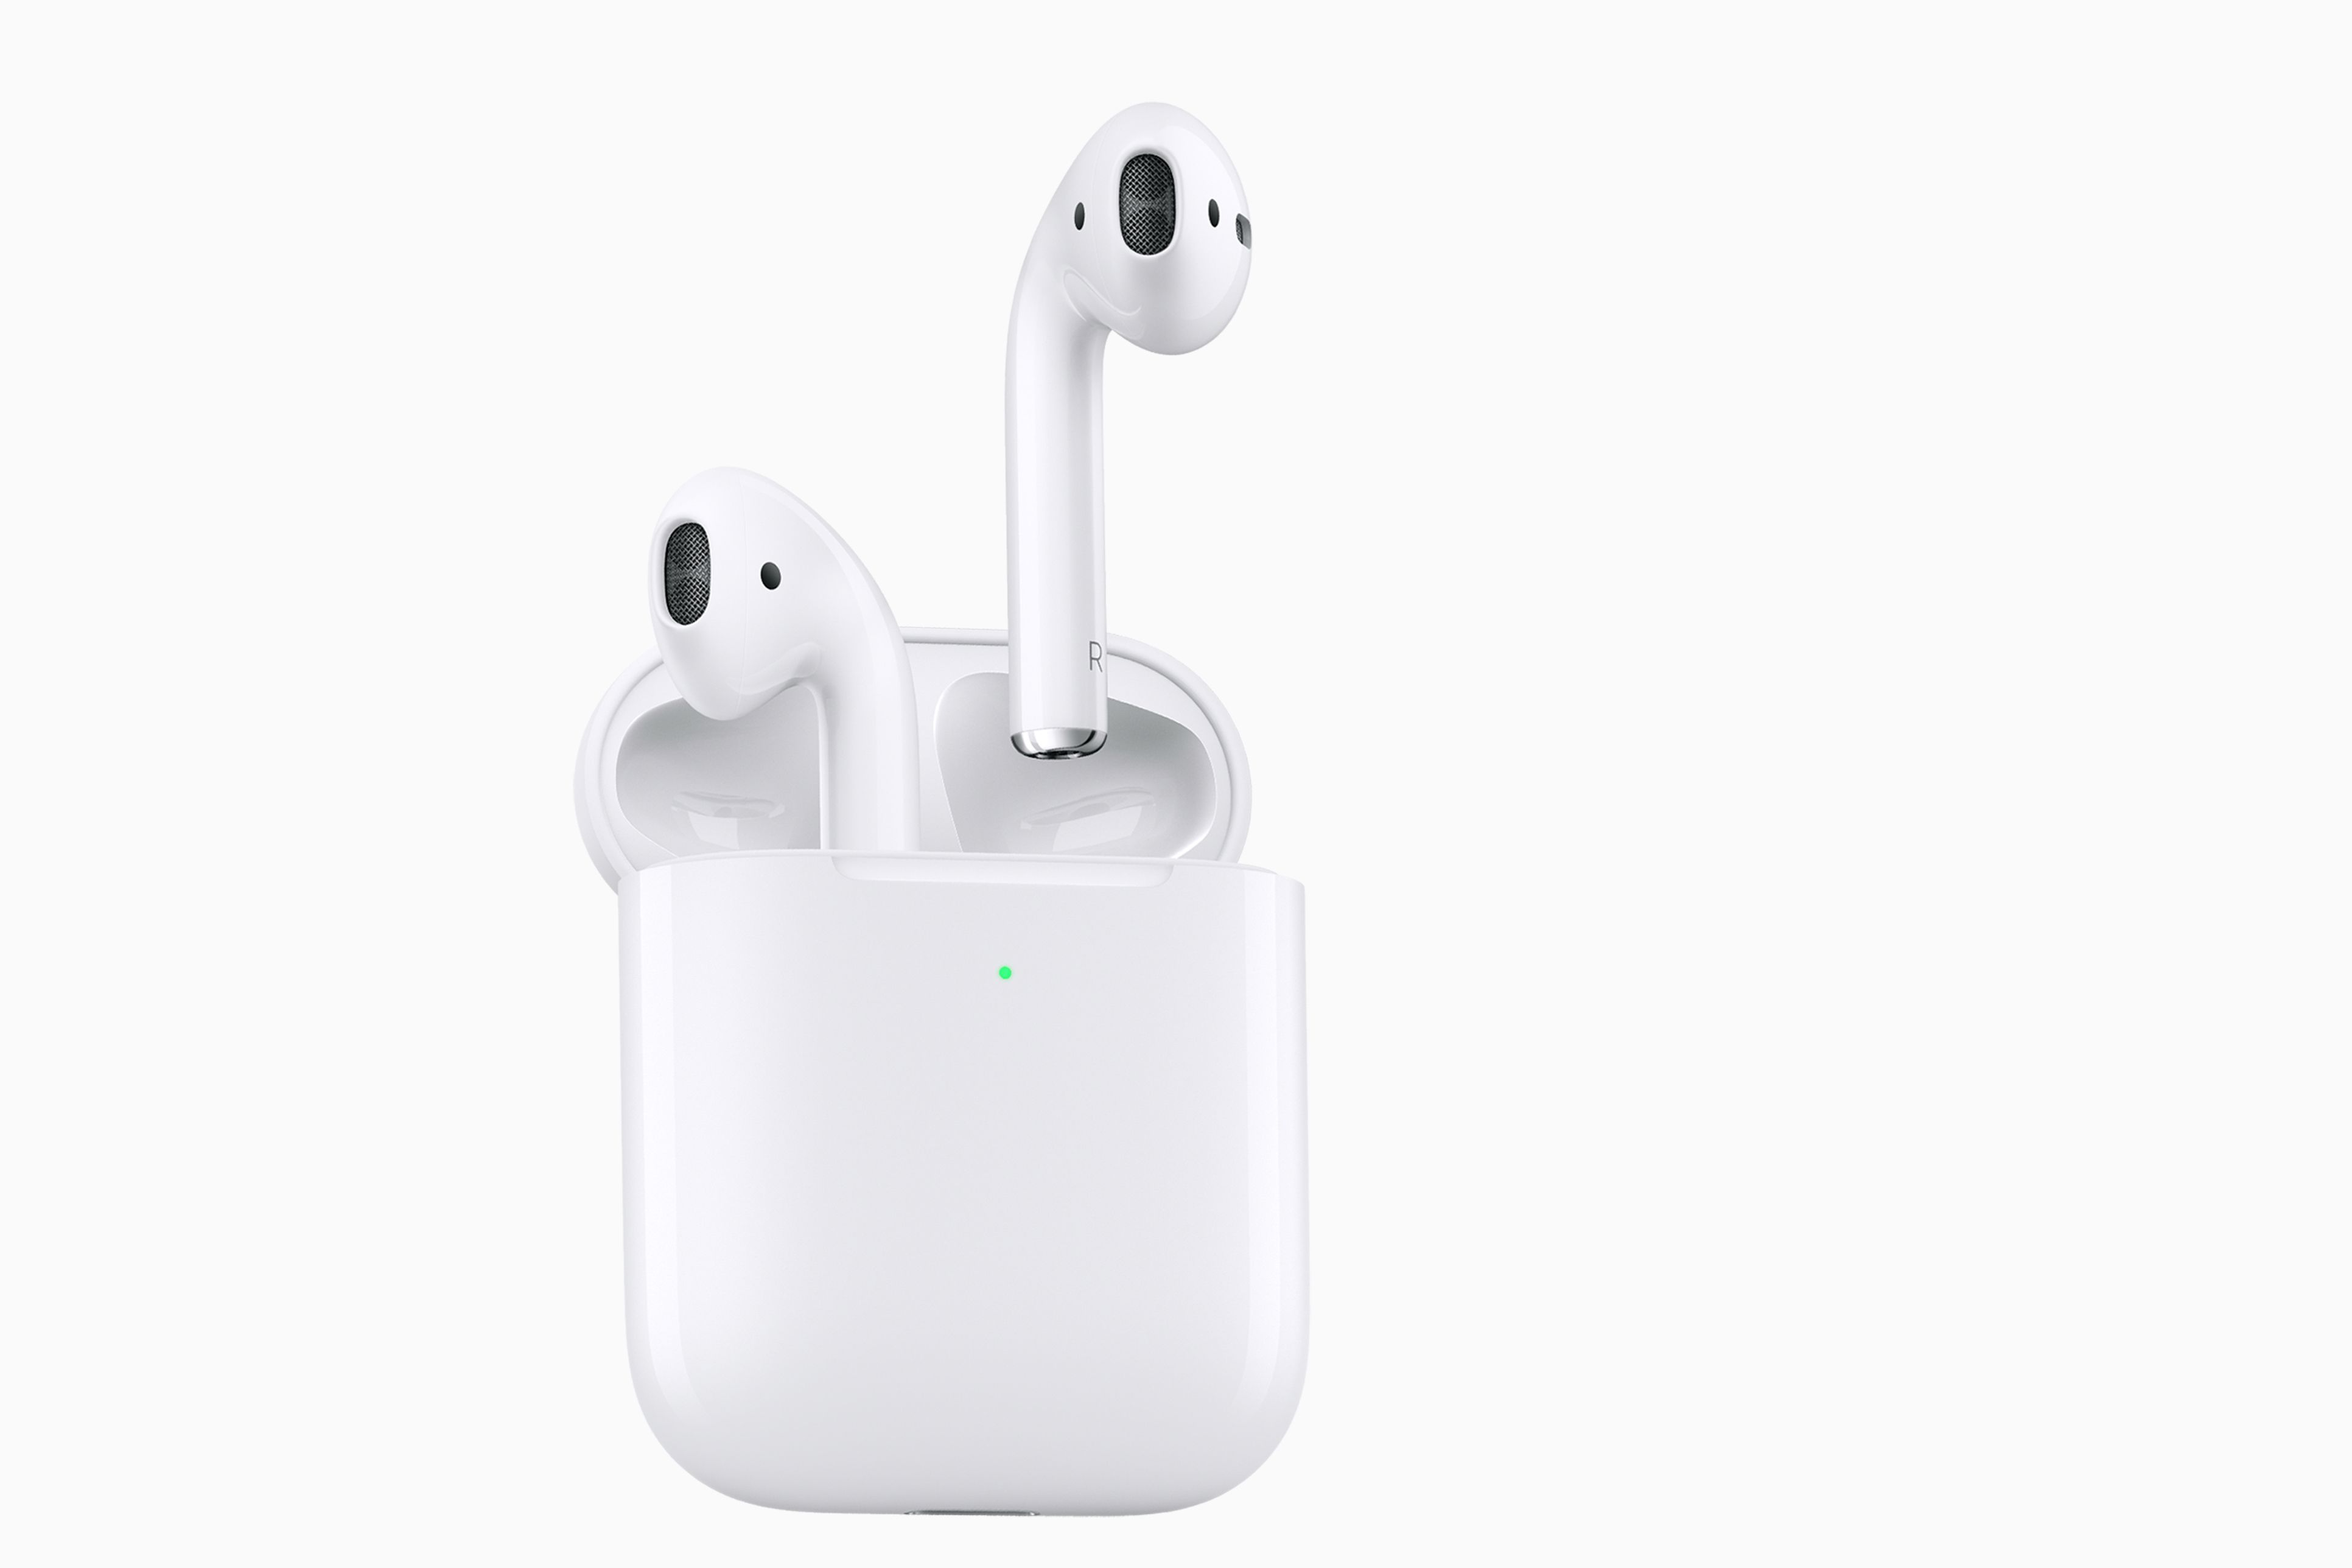 Apple AirPods in the charging case